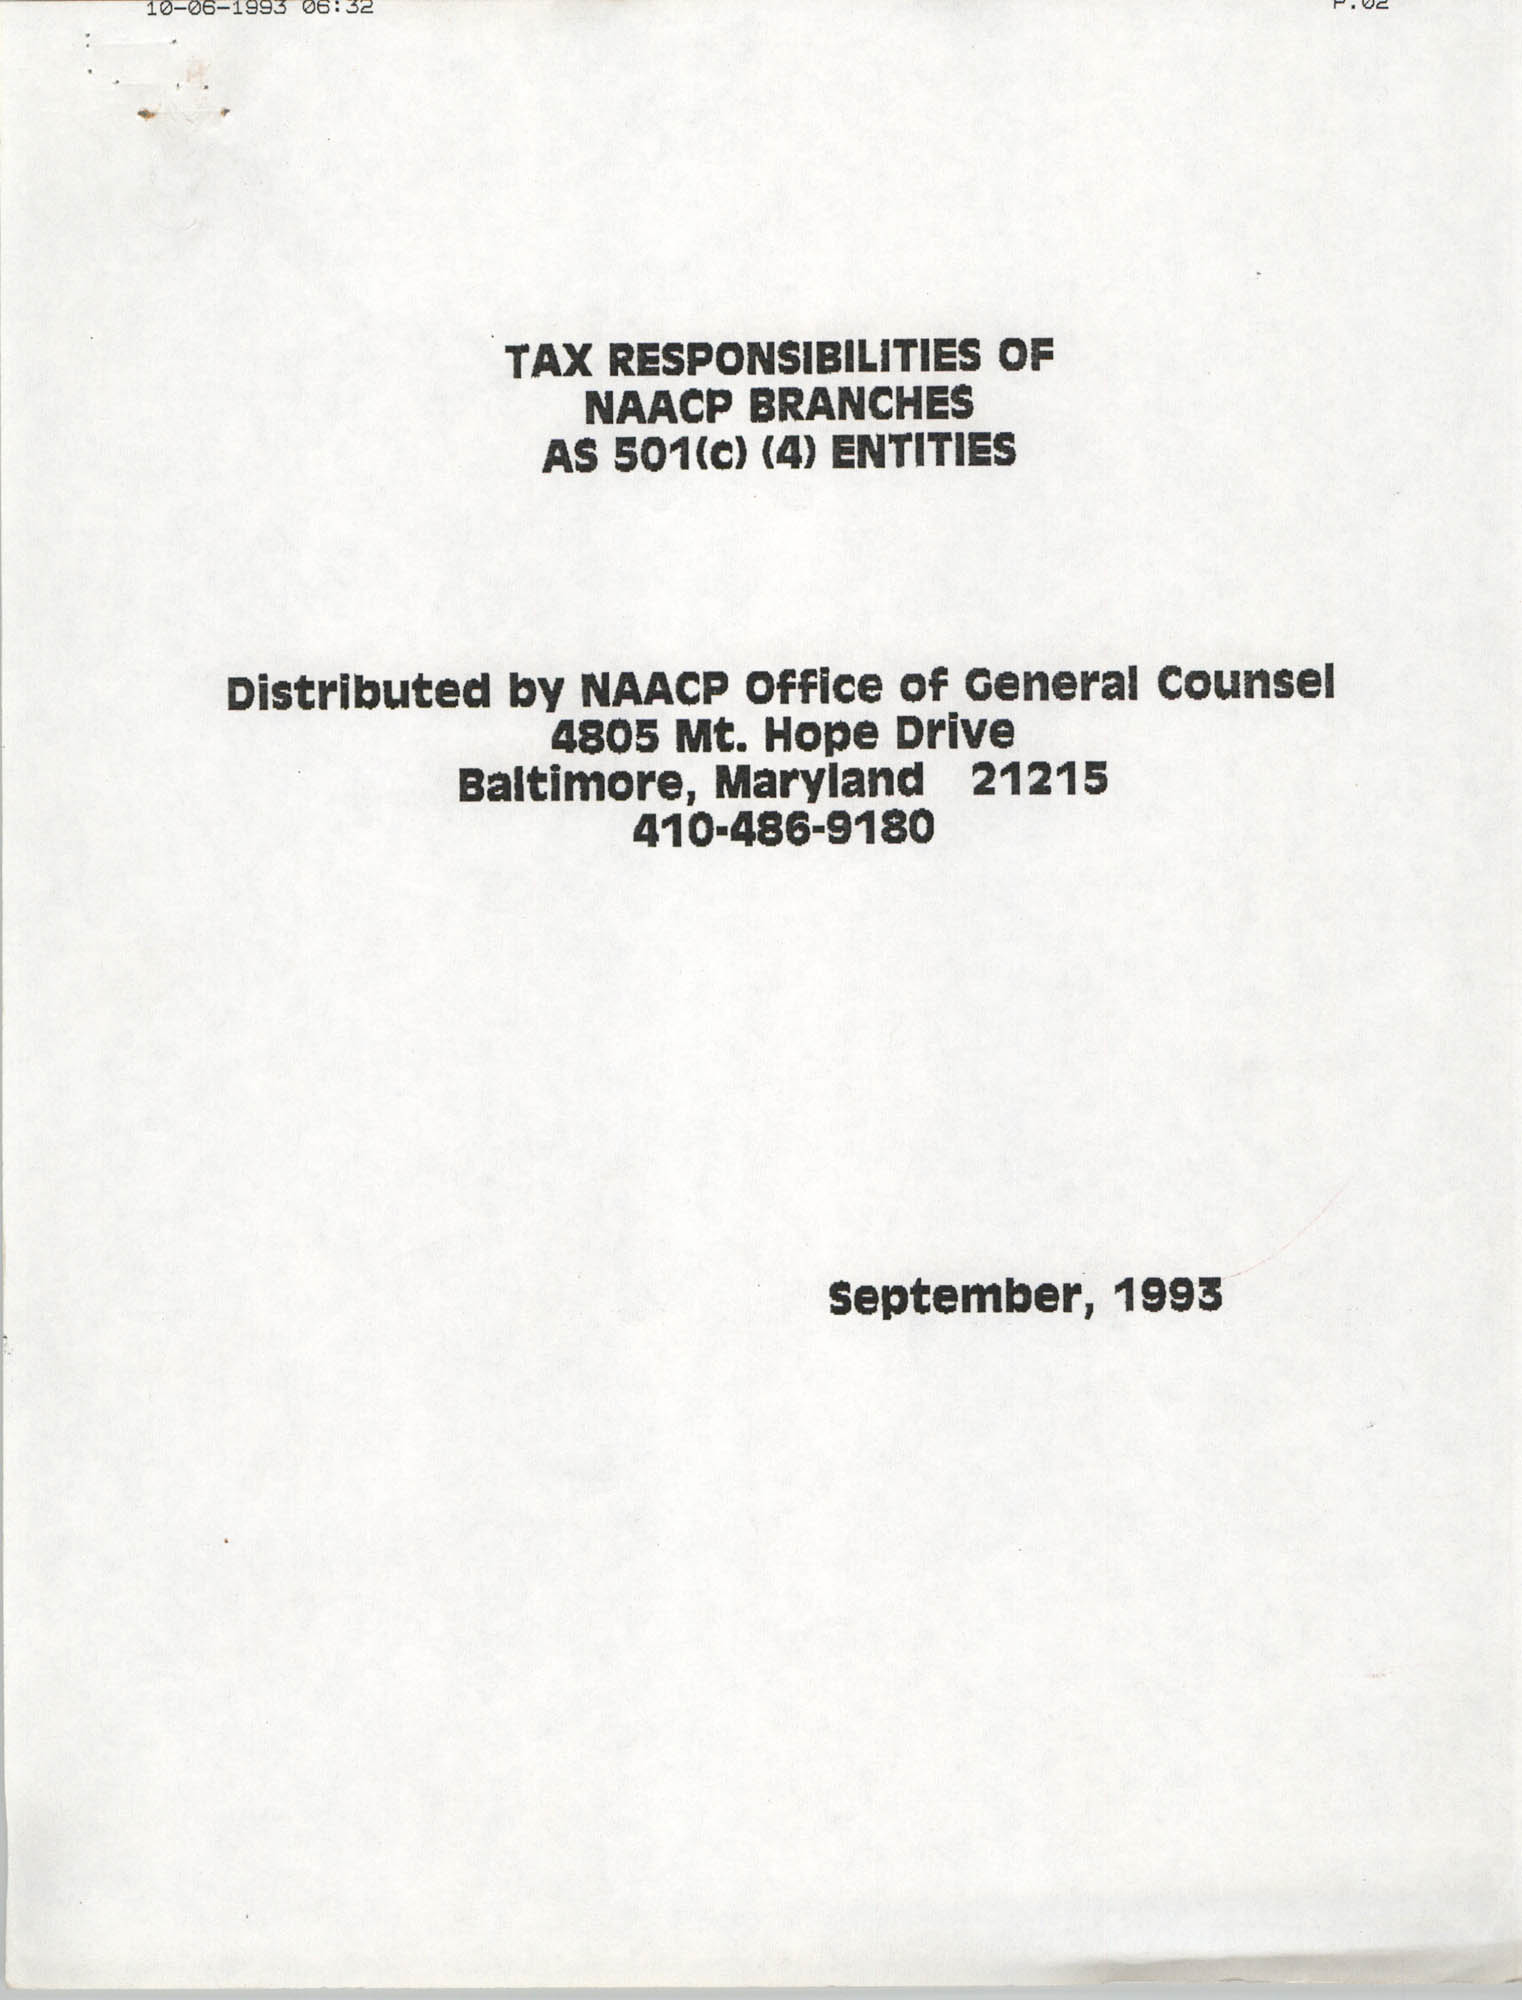 Tax Responsibilities of NAACP Branches as 501(c) (4) Entities, Cover